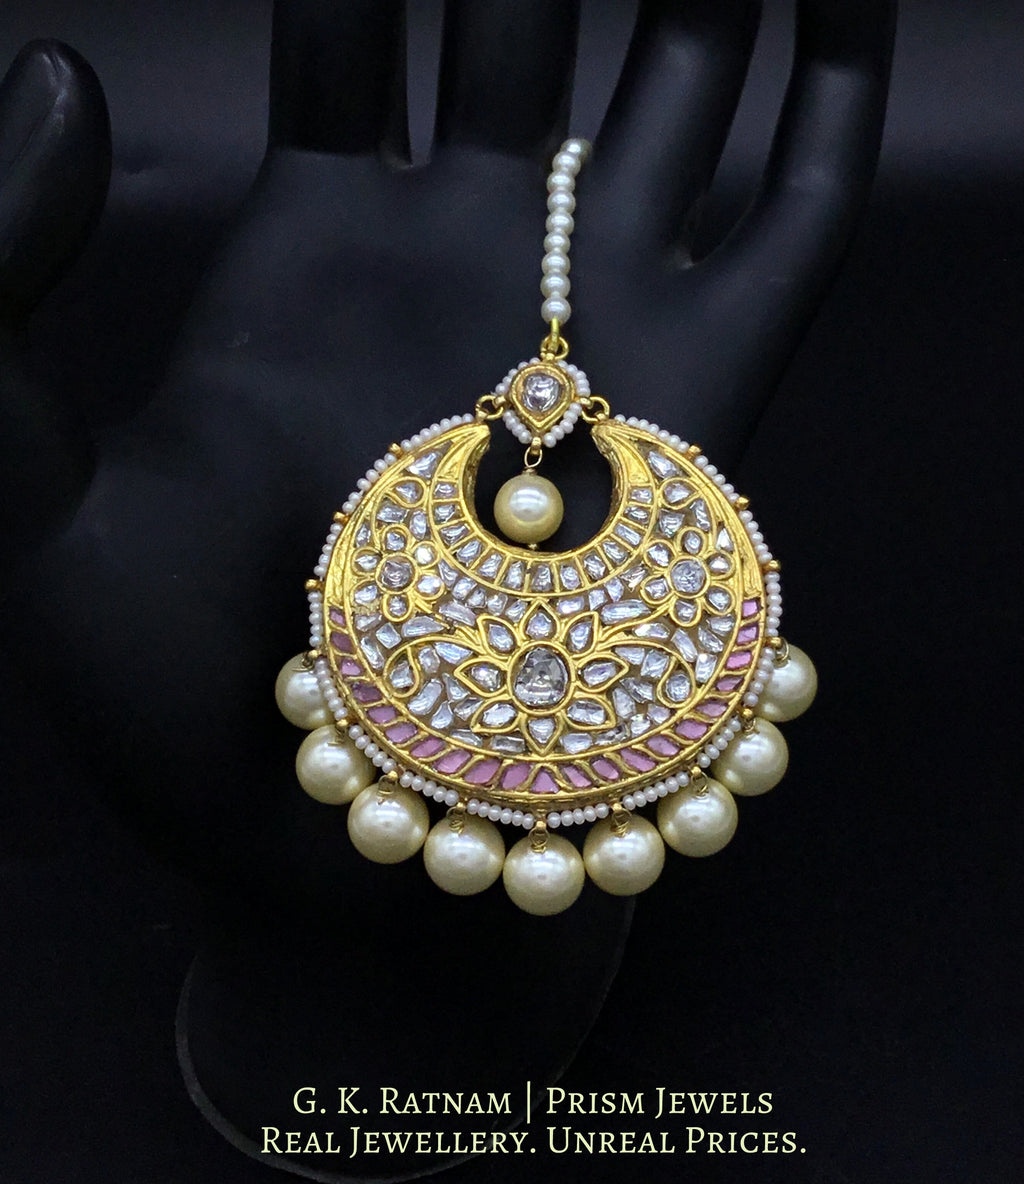 23k Gold and Diamond Polki Maang Tika embedded with baby pink stones - gold diamond polki kundan meena jadau jewellery